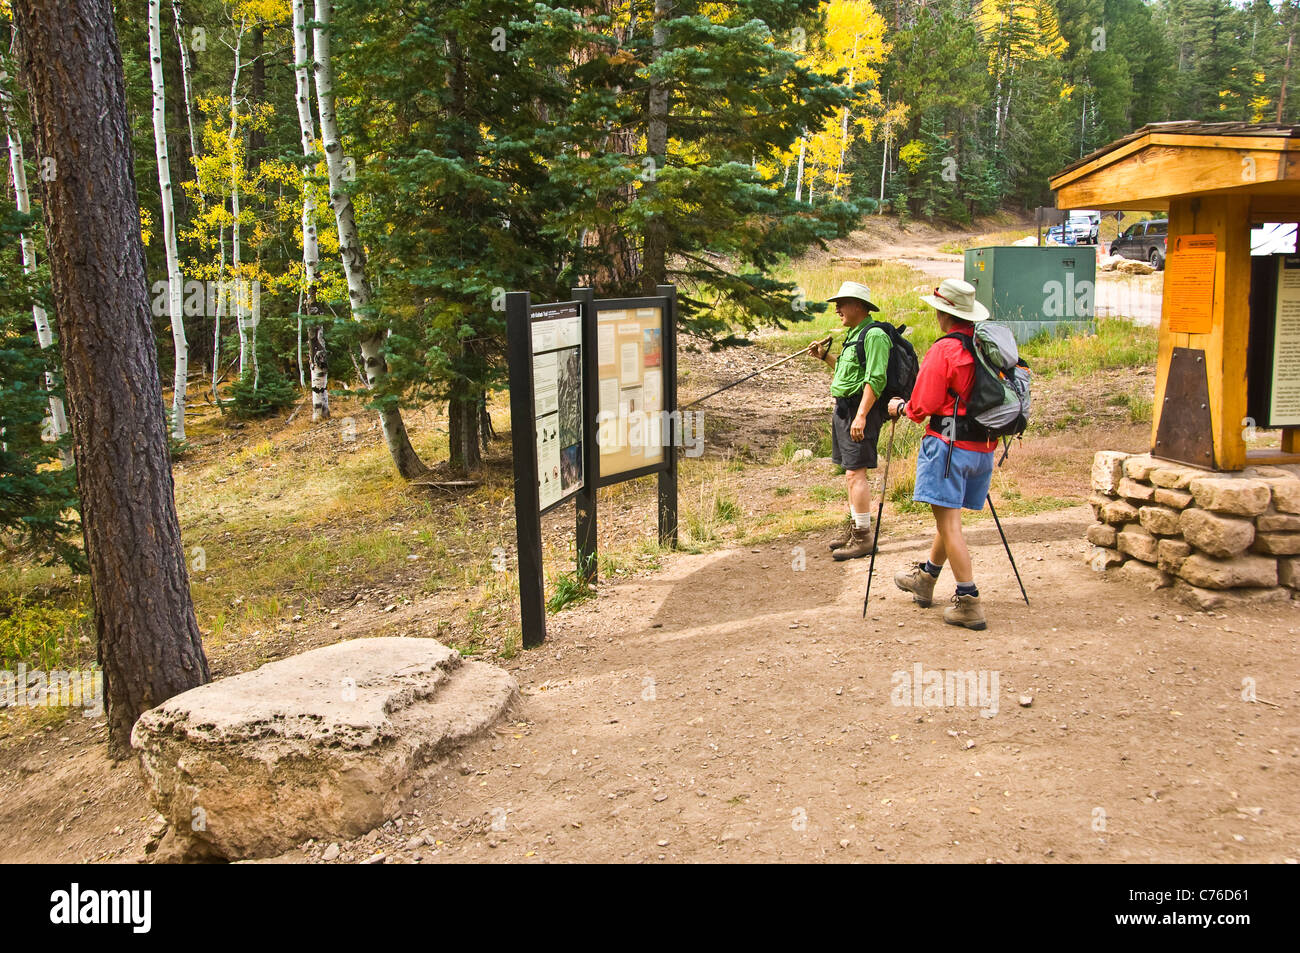 Kaibab Trail on the North Rim of the Grand Canyon National Park. Arizona. - Stock Image